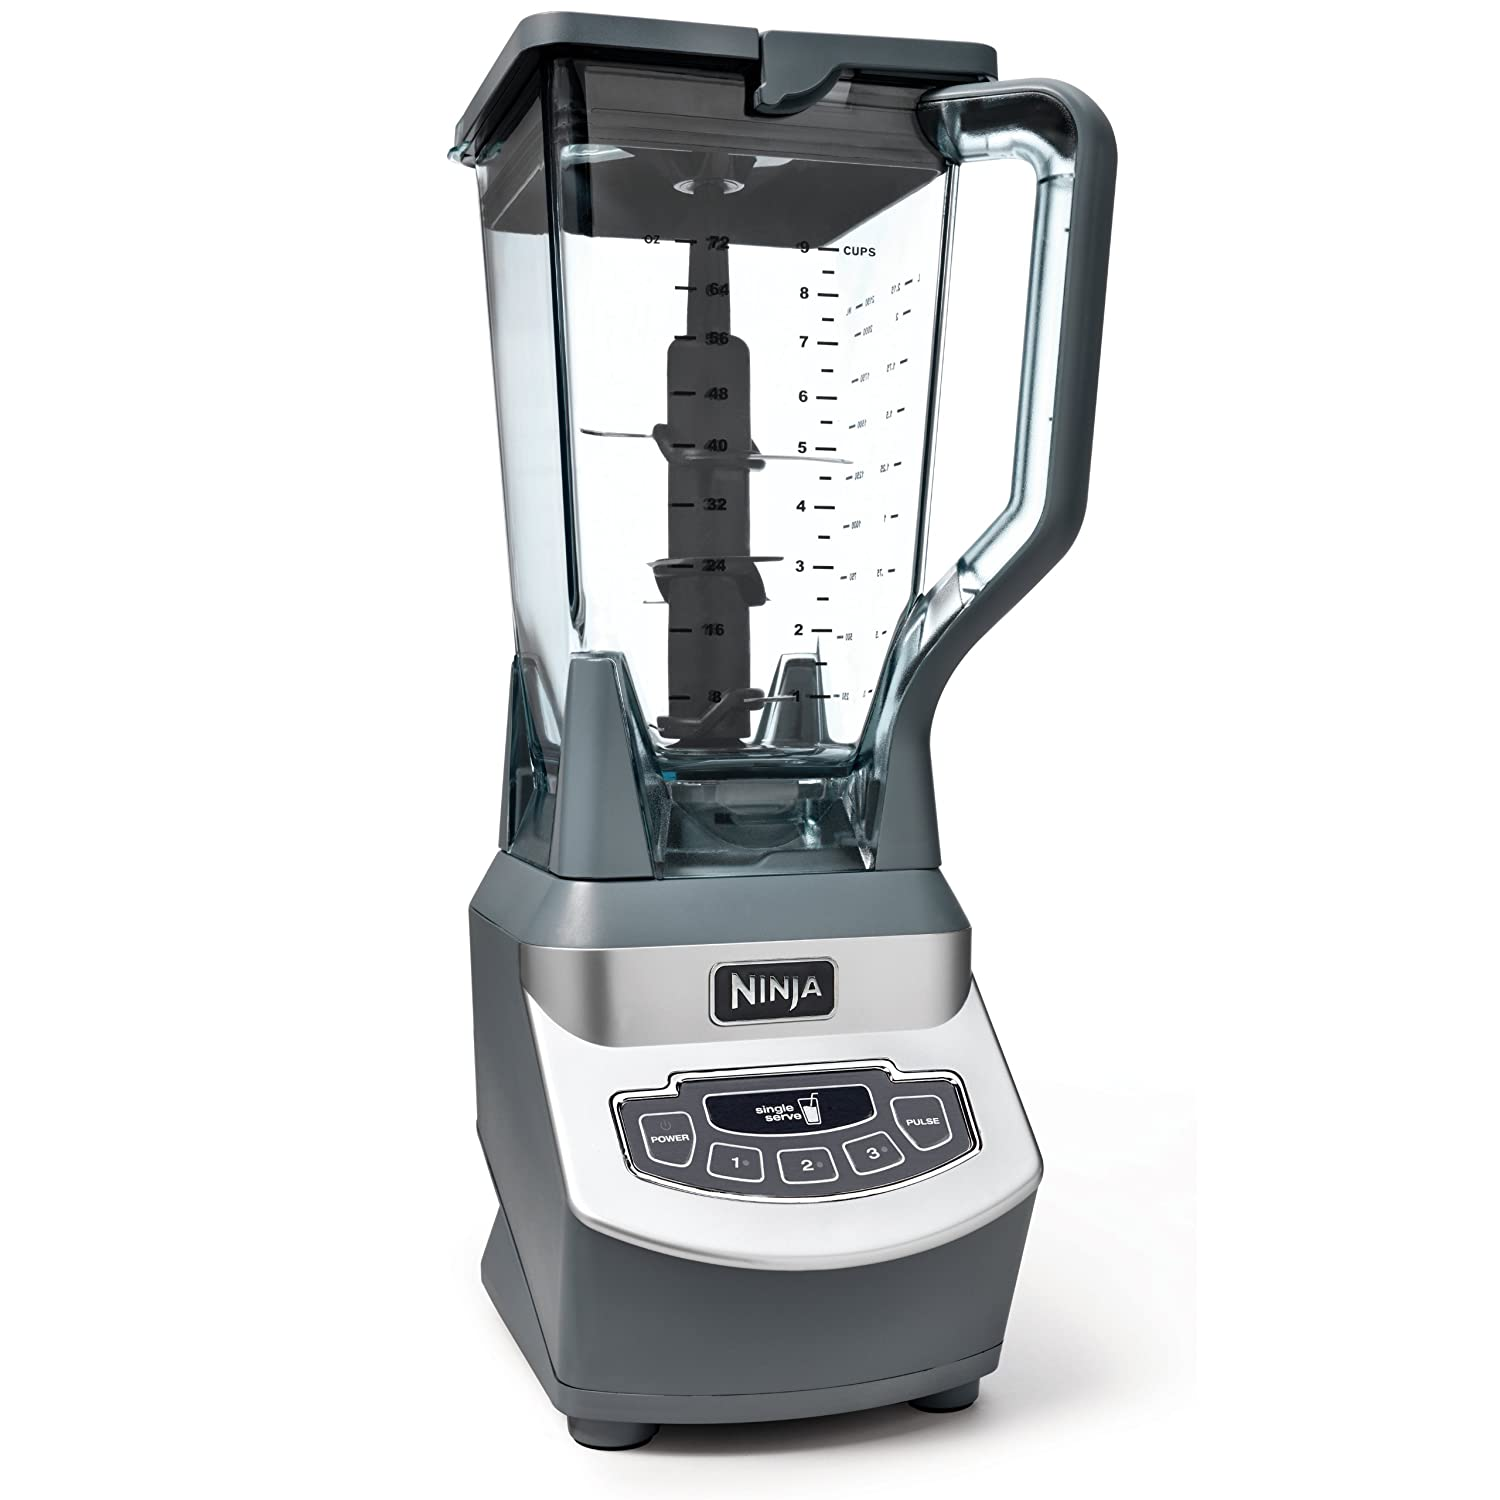 Ninja Professional Blender 2018 review